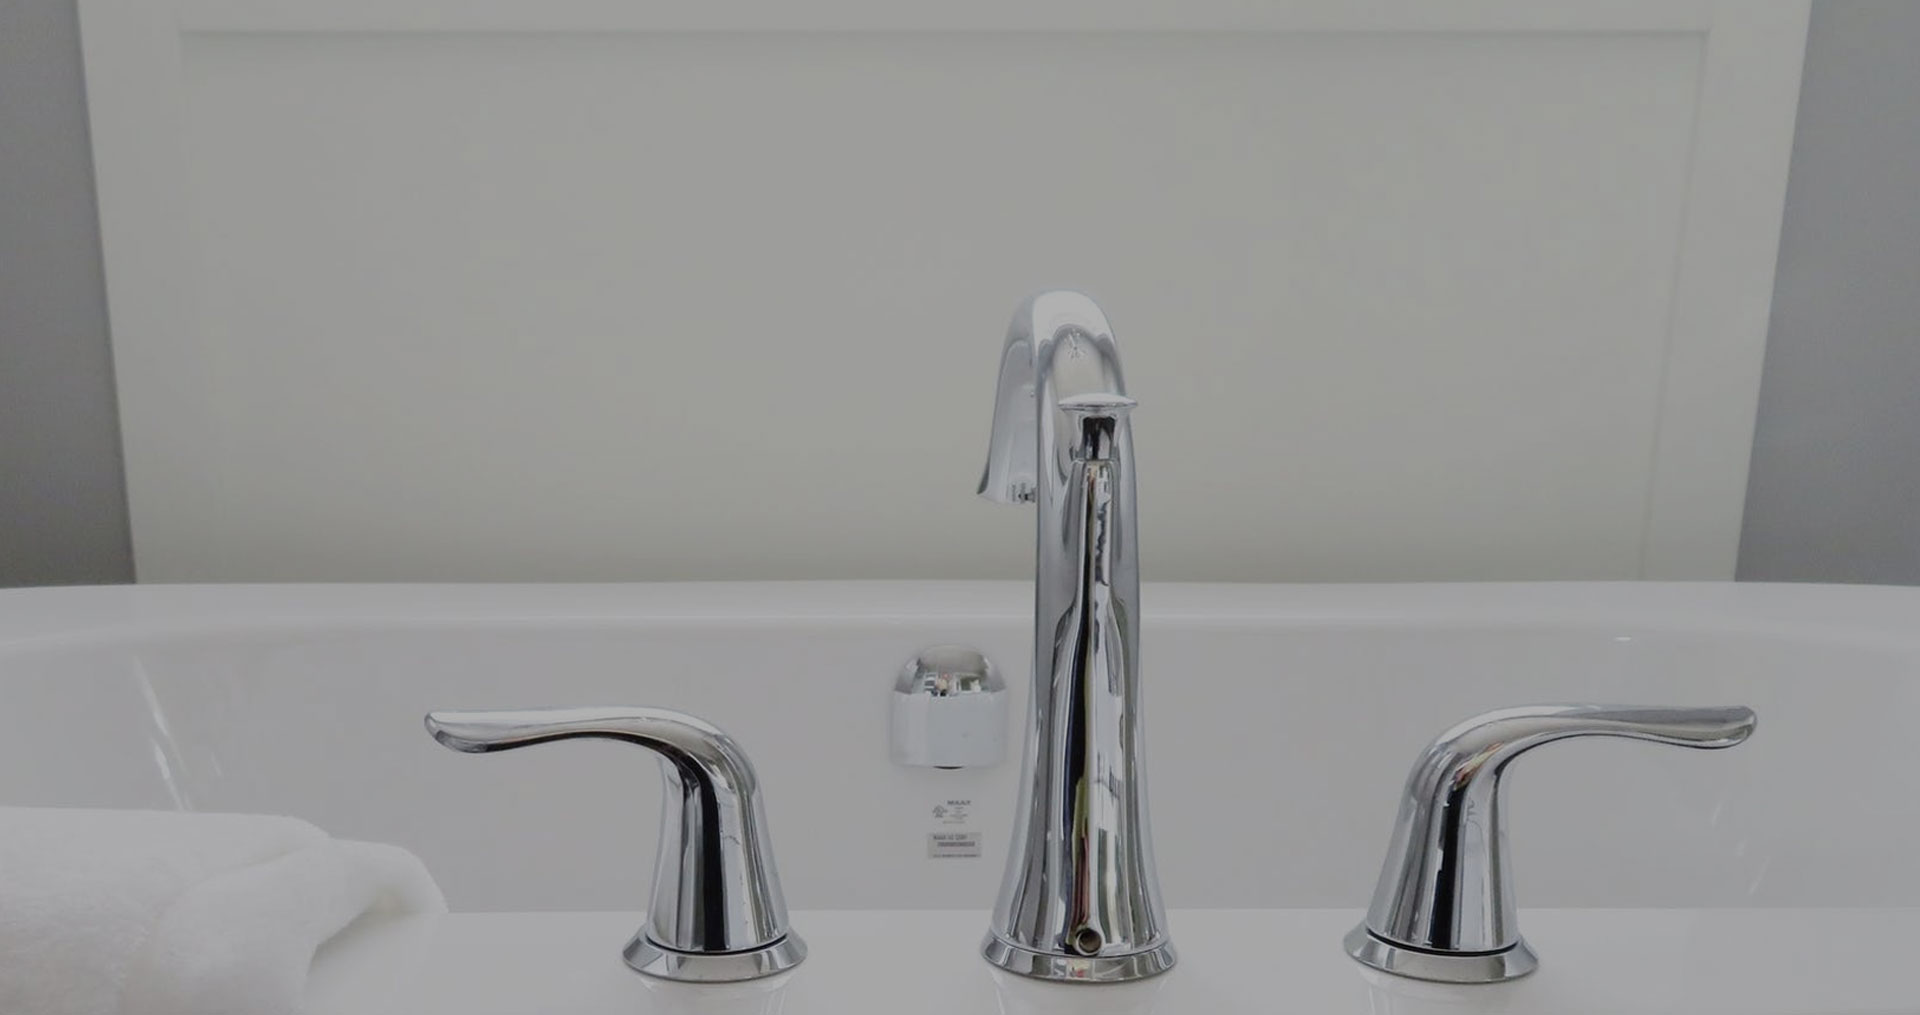 Fixtures-and-Faucets